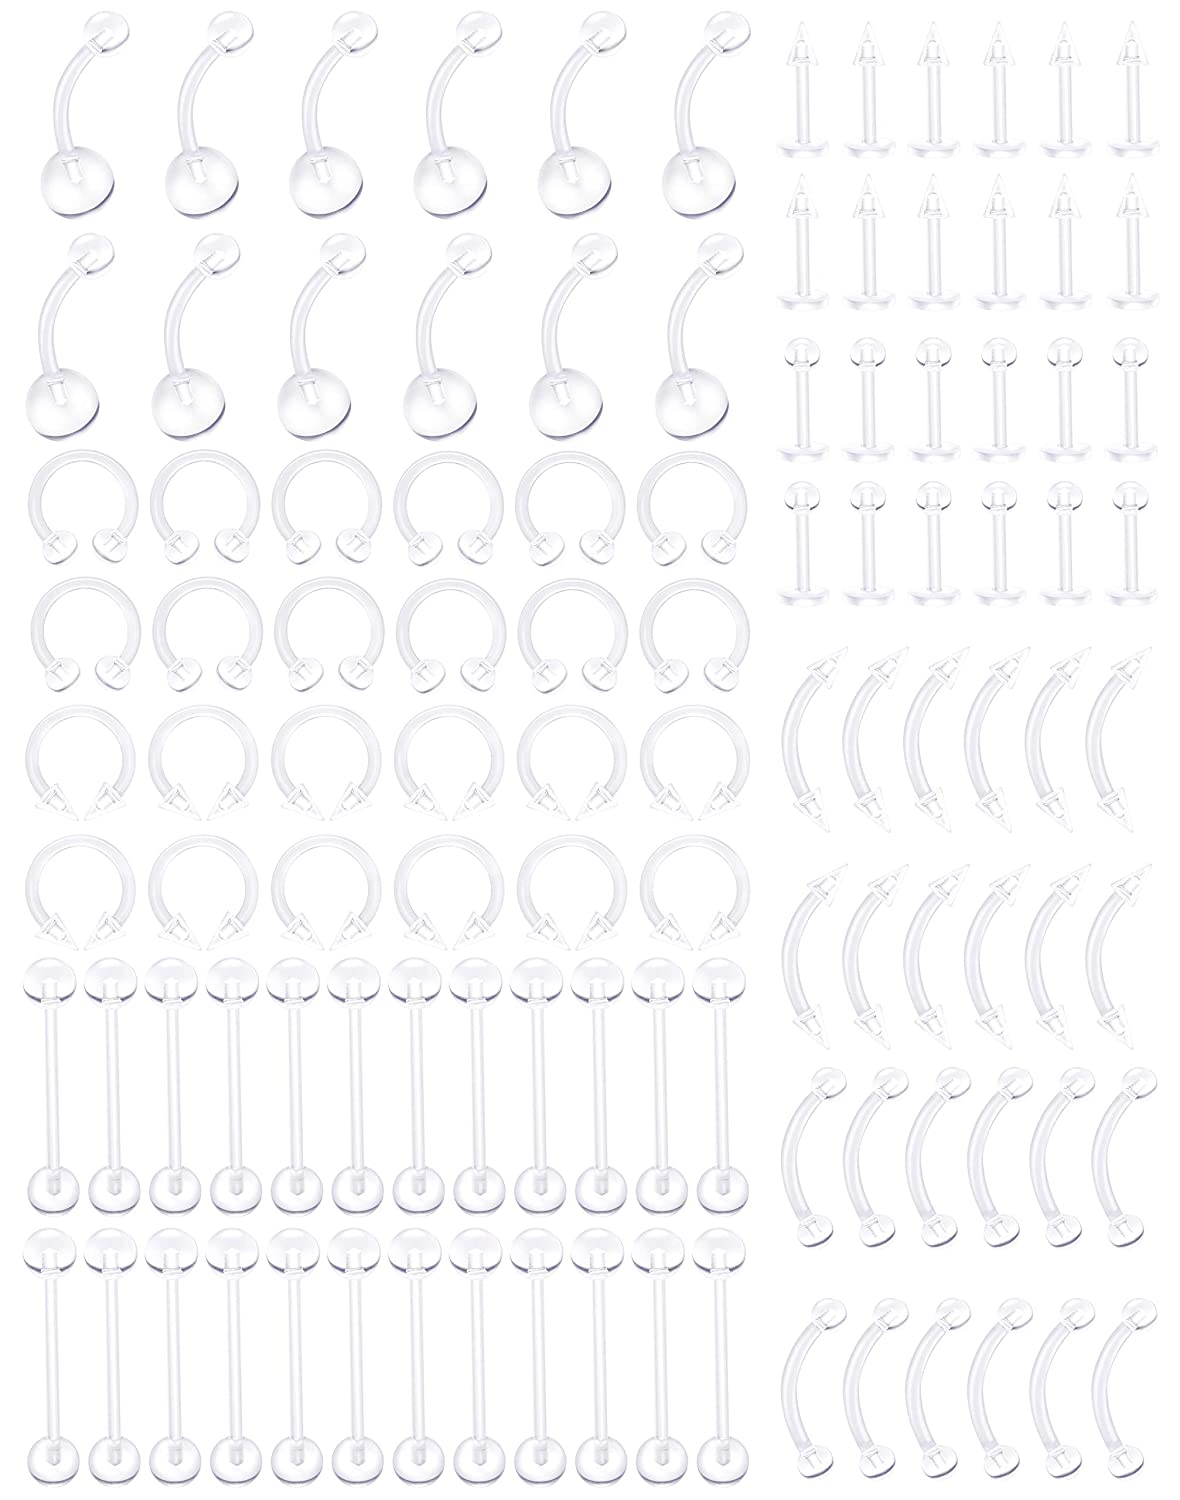 JOERICA 108 Pcs Acrylic Body Jewelry Piercing Clear Retainer Nose Horseshoe Lip Tongue Eyebrow Tragus Navel Belly Ring Barbells 14G-16G JAPNS03-108P